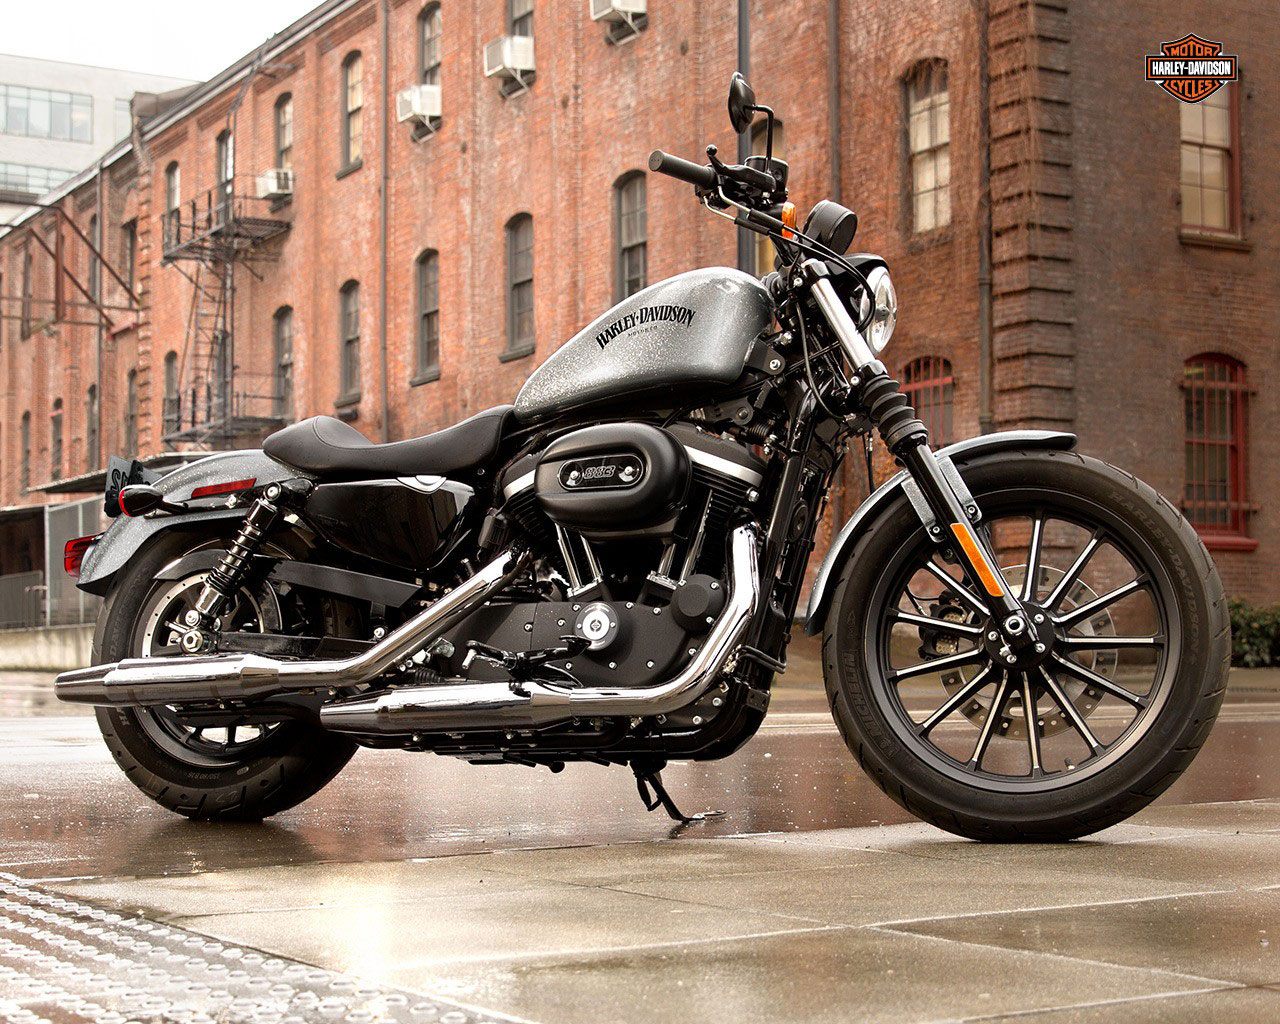 Harley 883 review